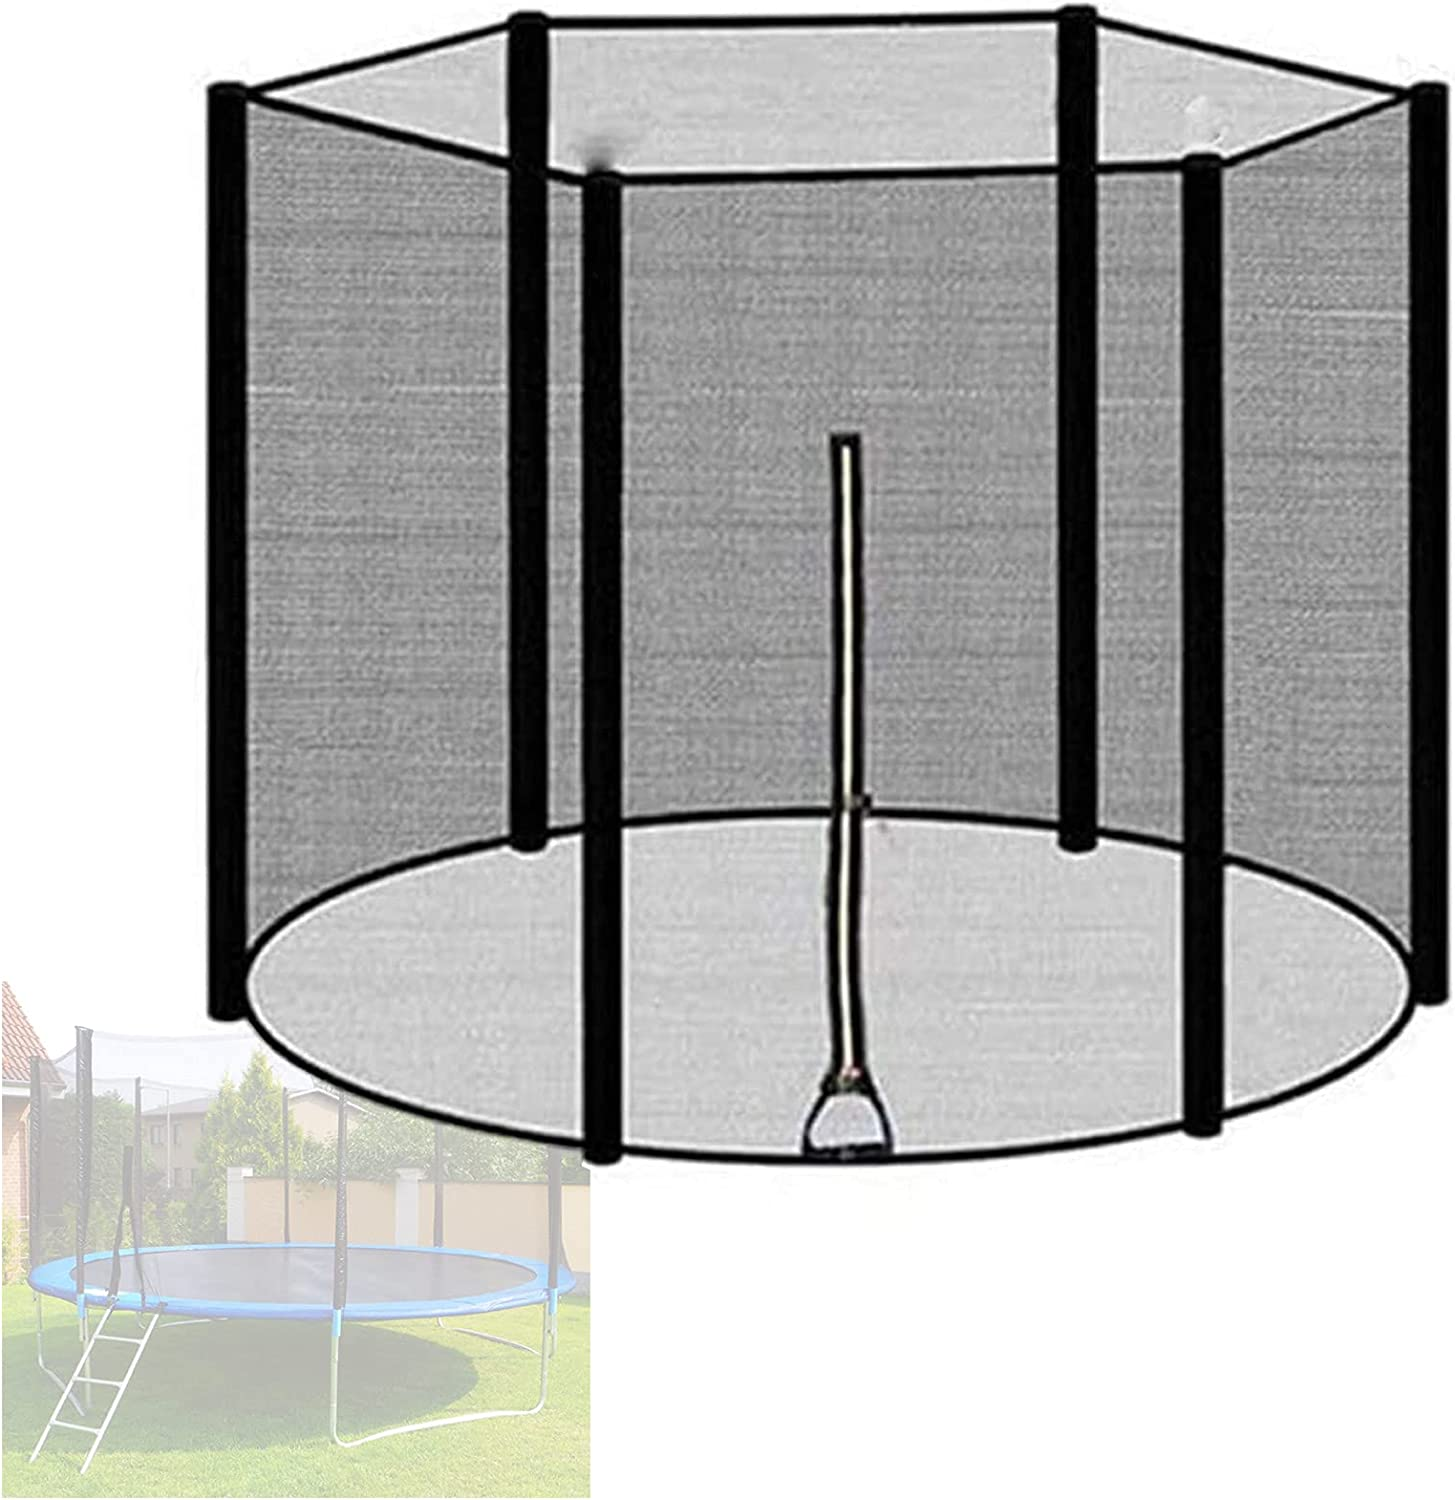 Finally popular brand KHXJYC Trampoline Safety Net Beauty products Replacement Fence 16Ft 6 Breath